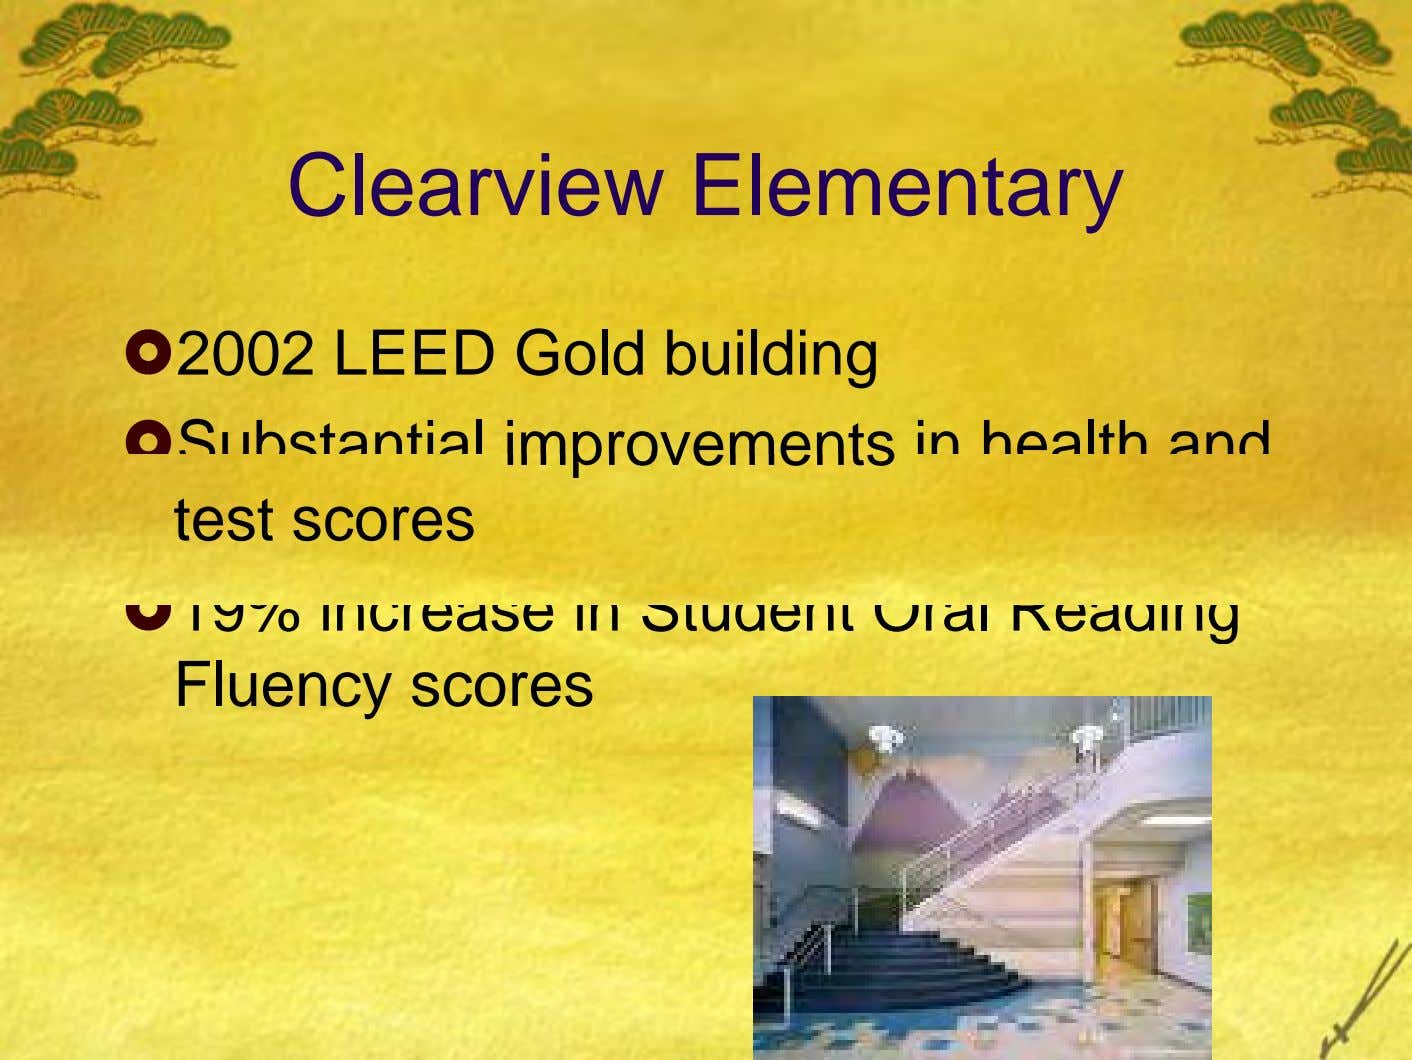 Clearview Elementary 2002 LEED Gold building Substantial improvements in health and test scores 19% increase in